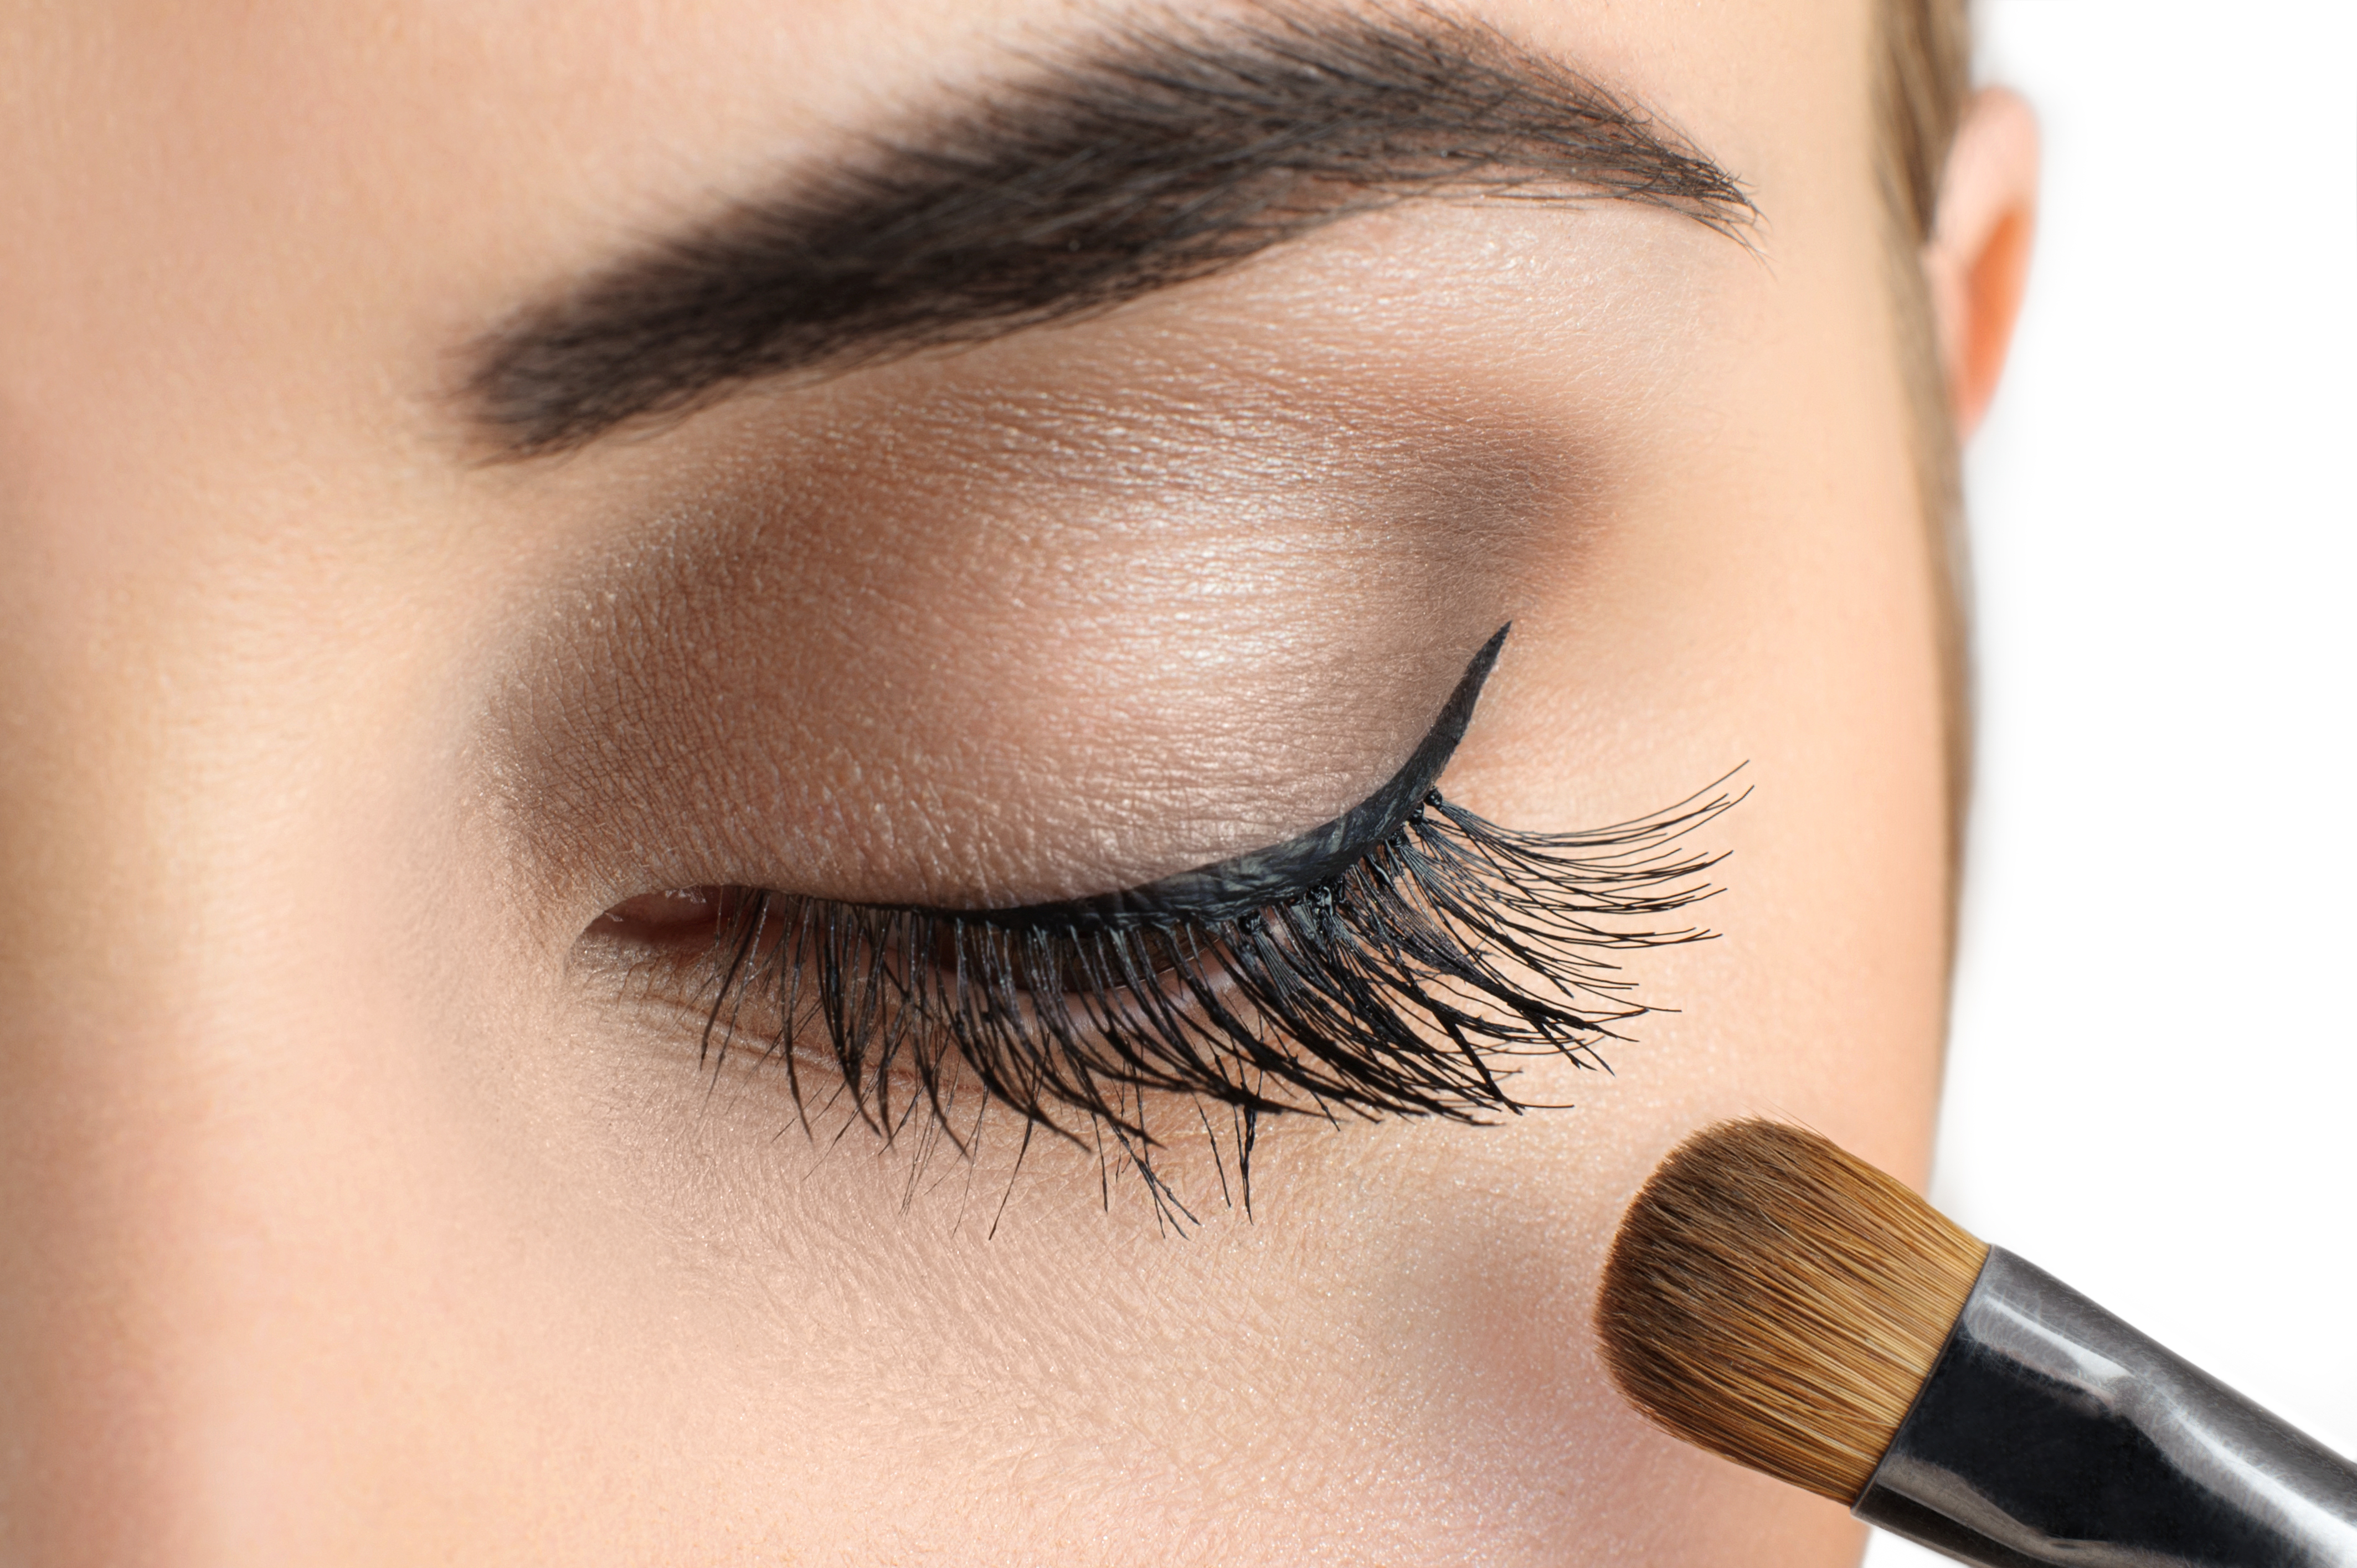 flat eyeshadow brush in front eyelashes of a woman with her makeup done